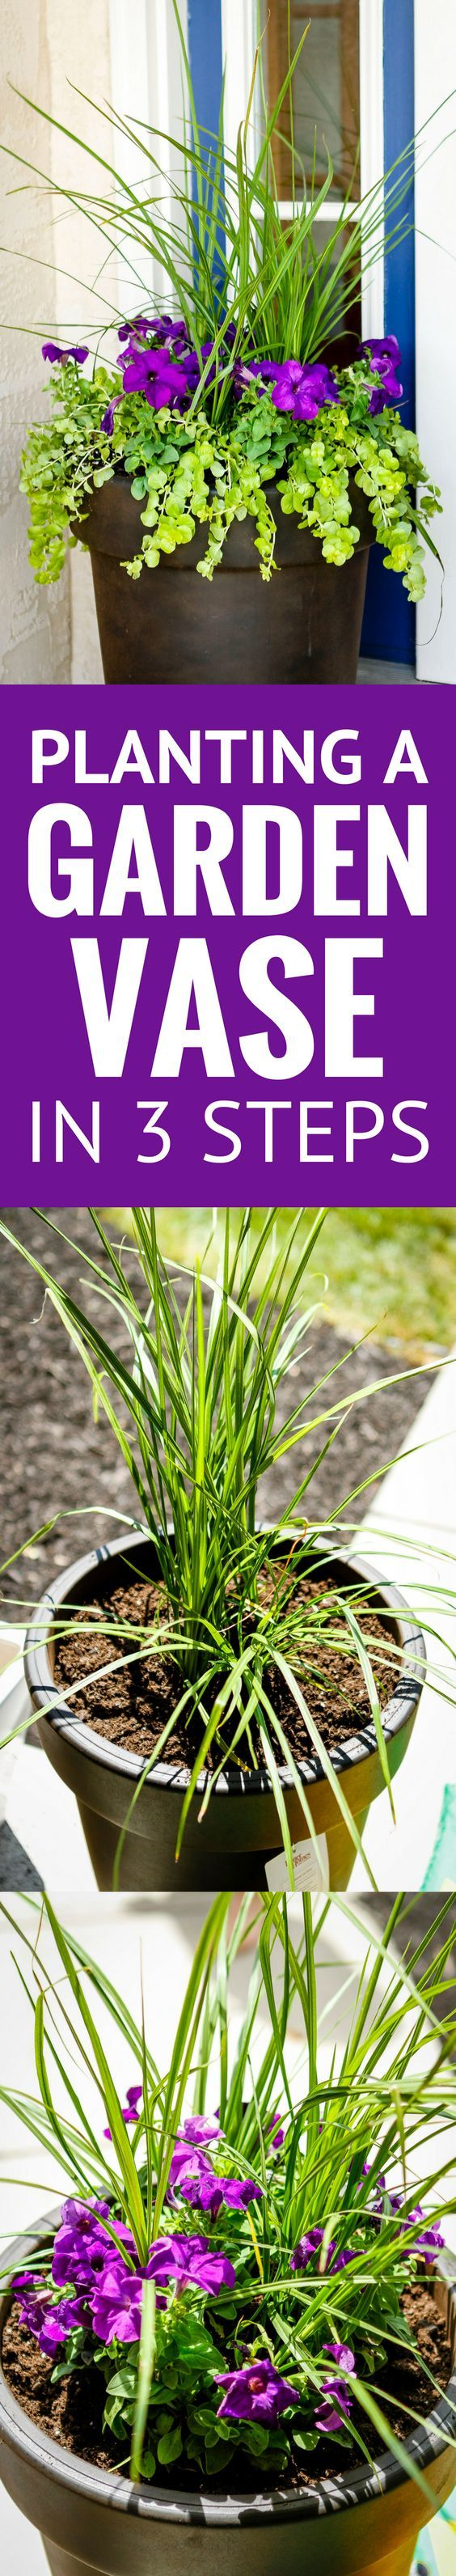 Planting a Perfectly Proportioned Garden Vase -- 3 easy steps to planting a garden vase that will be a beautiful focal point for your front porch, patio or deck!   how to plant flowers in large planters   how to plant flowers in pots outdoors   how to plant outdoor planters   planting in pots ideas   find the tutorial on unsophisticook.com